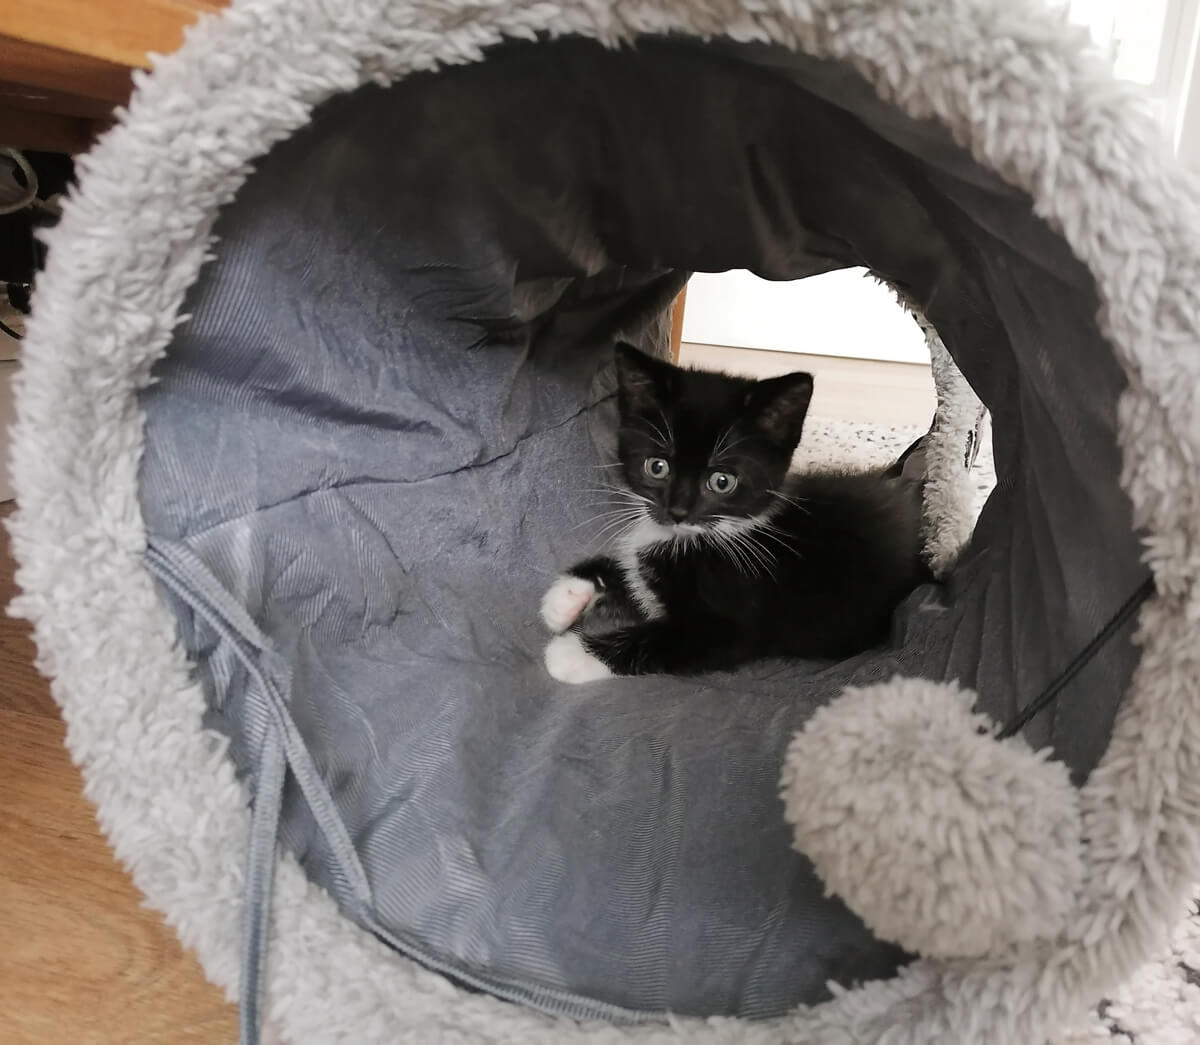 Arlo laying inside her grey cat tunnel. She is looking straight into the camera.